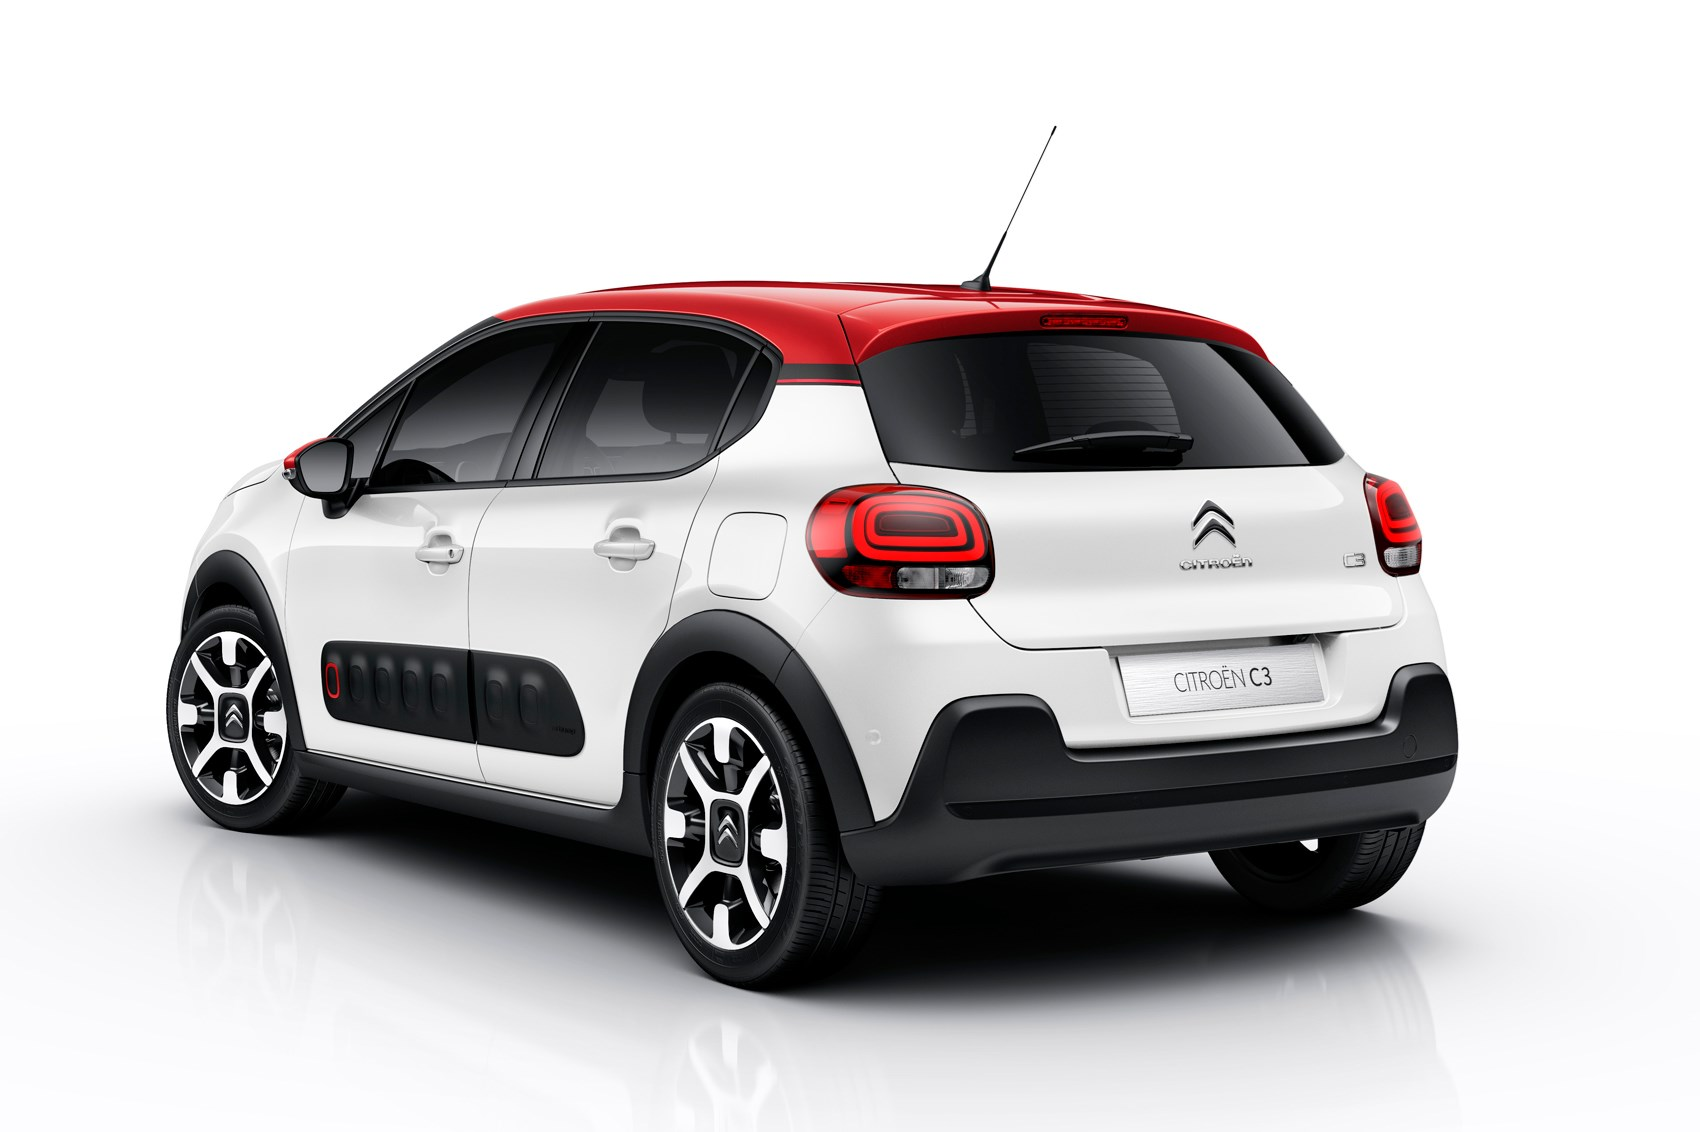 new 2017 citroen c3 revealed it 39 s cactus take 2 by car magazine